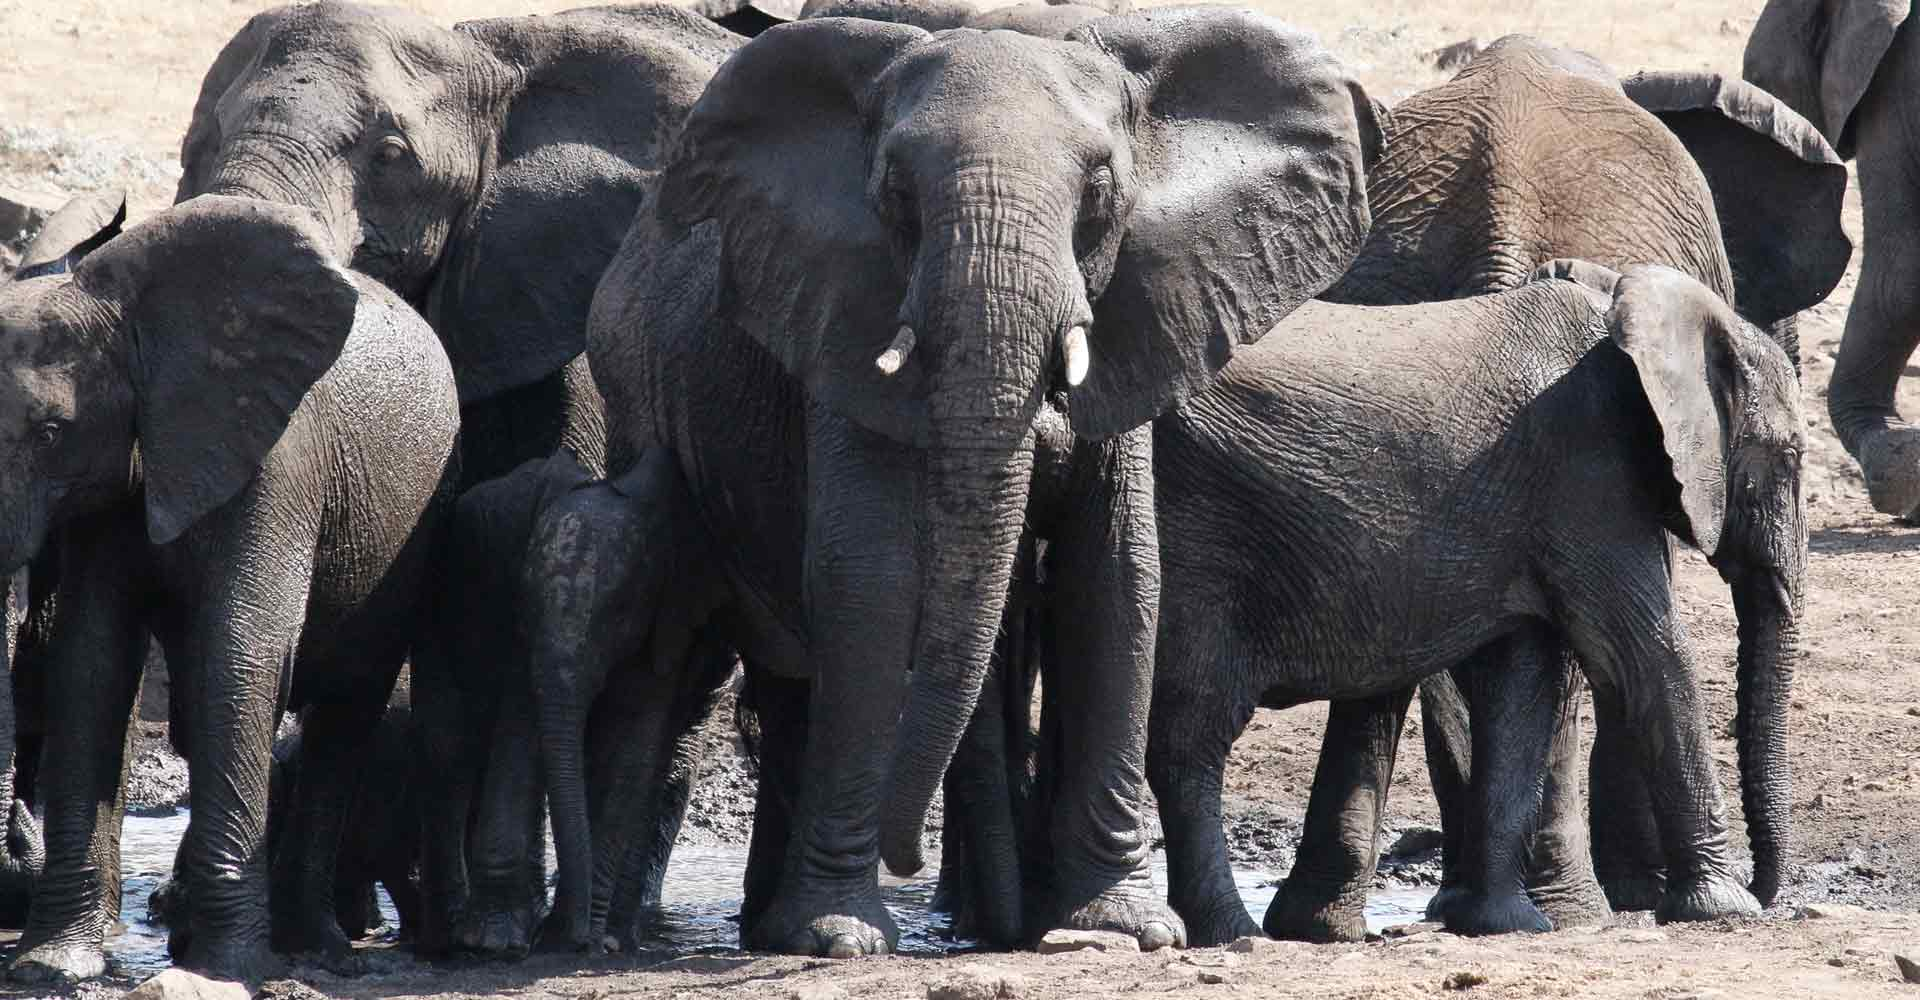 Elephant herd sighting in Sabie game park by Mabeco tours